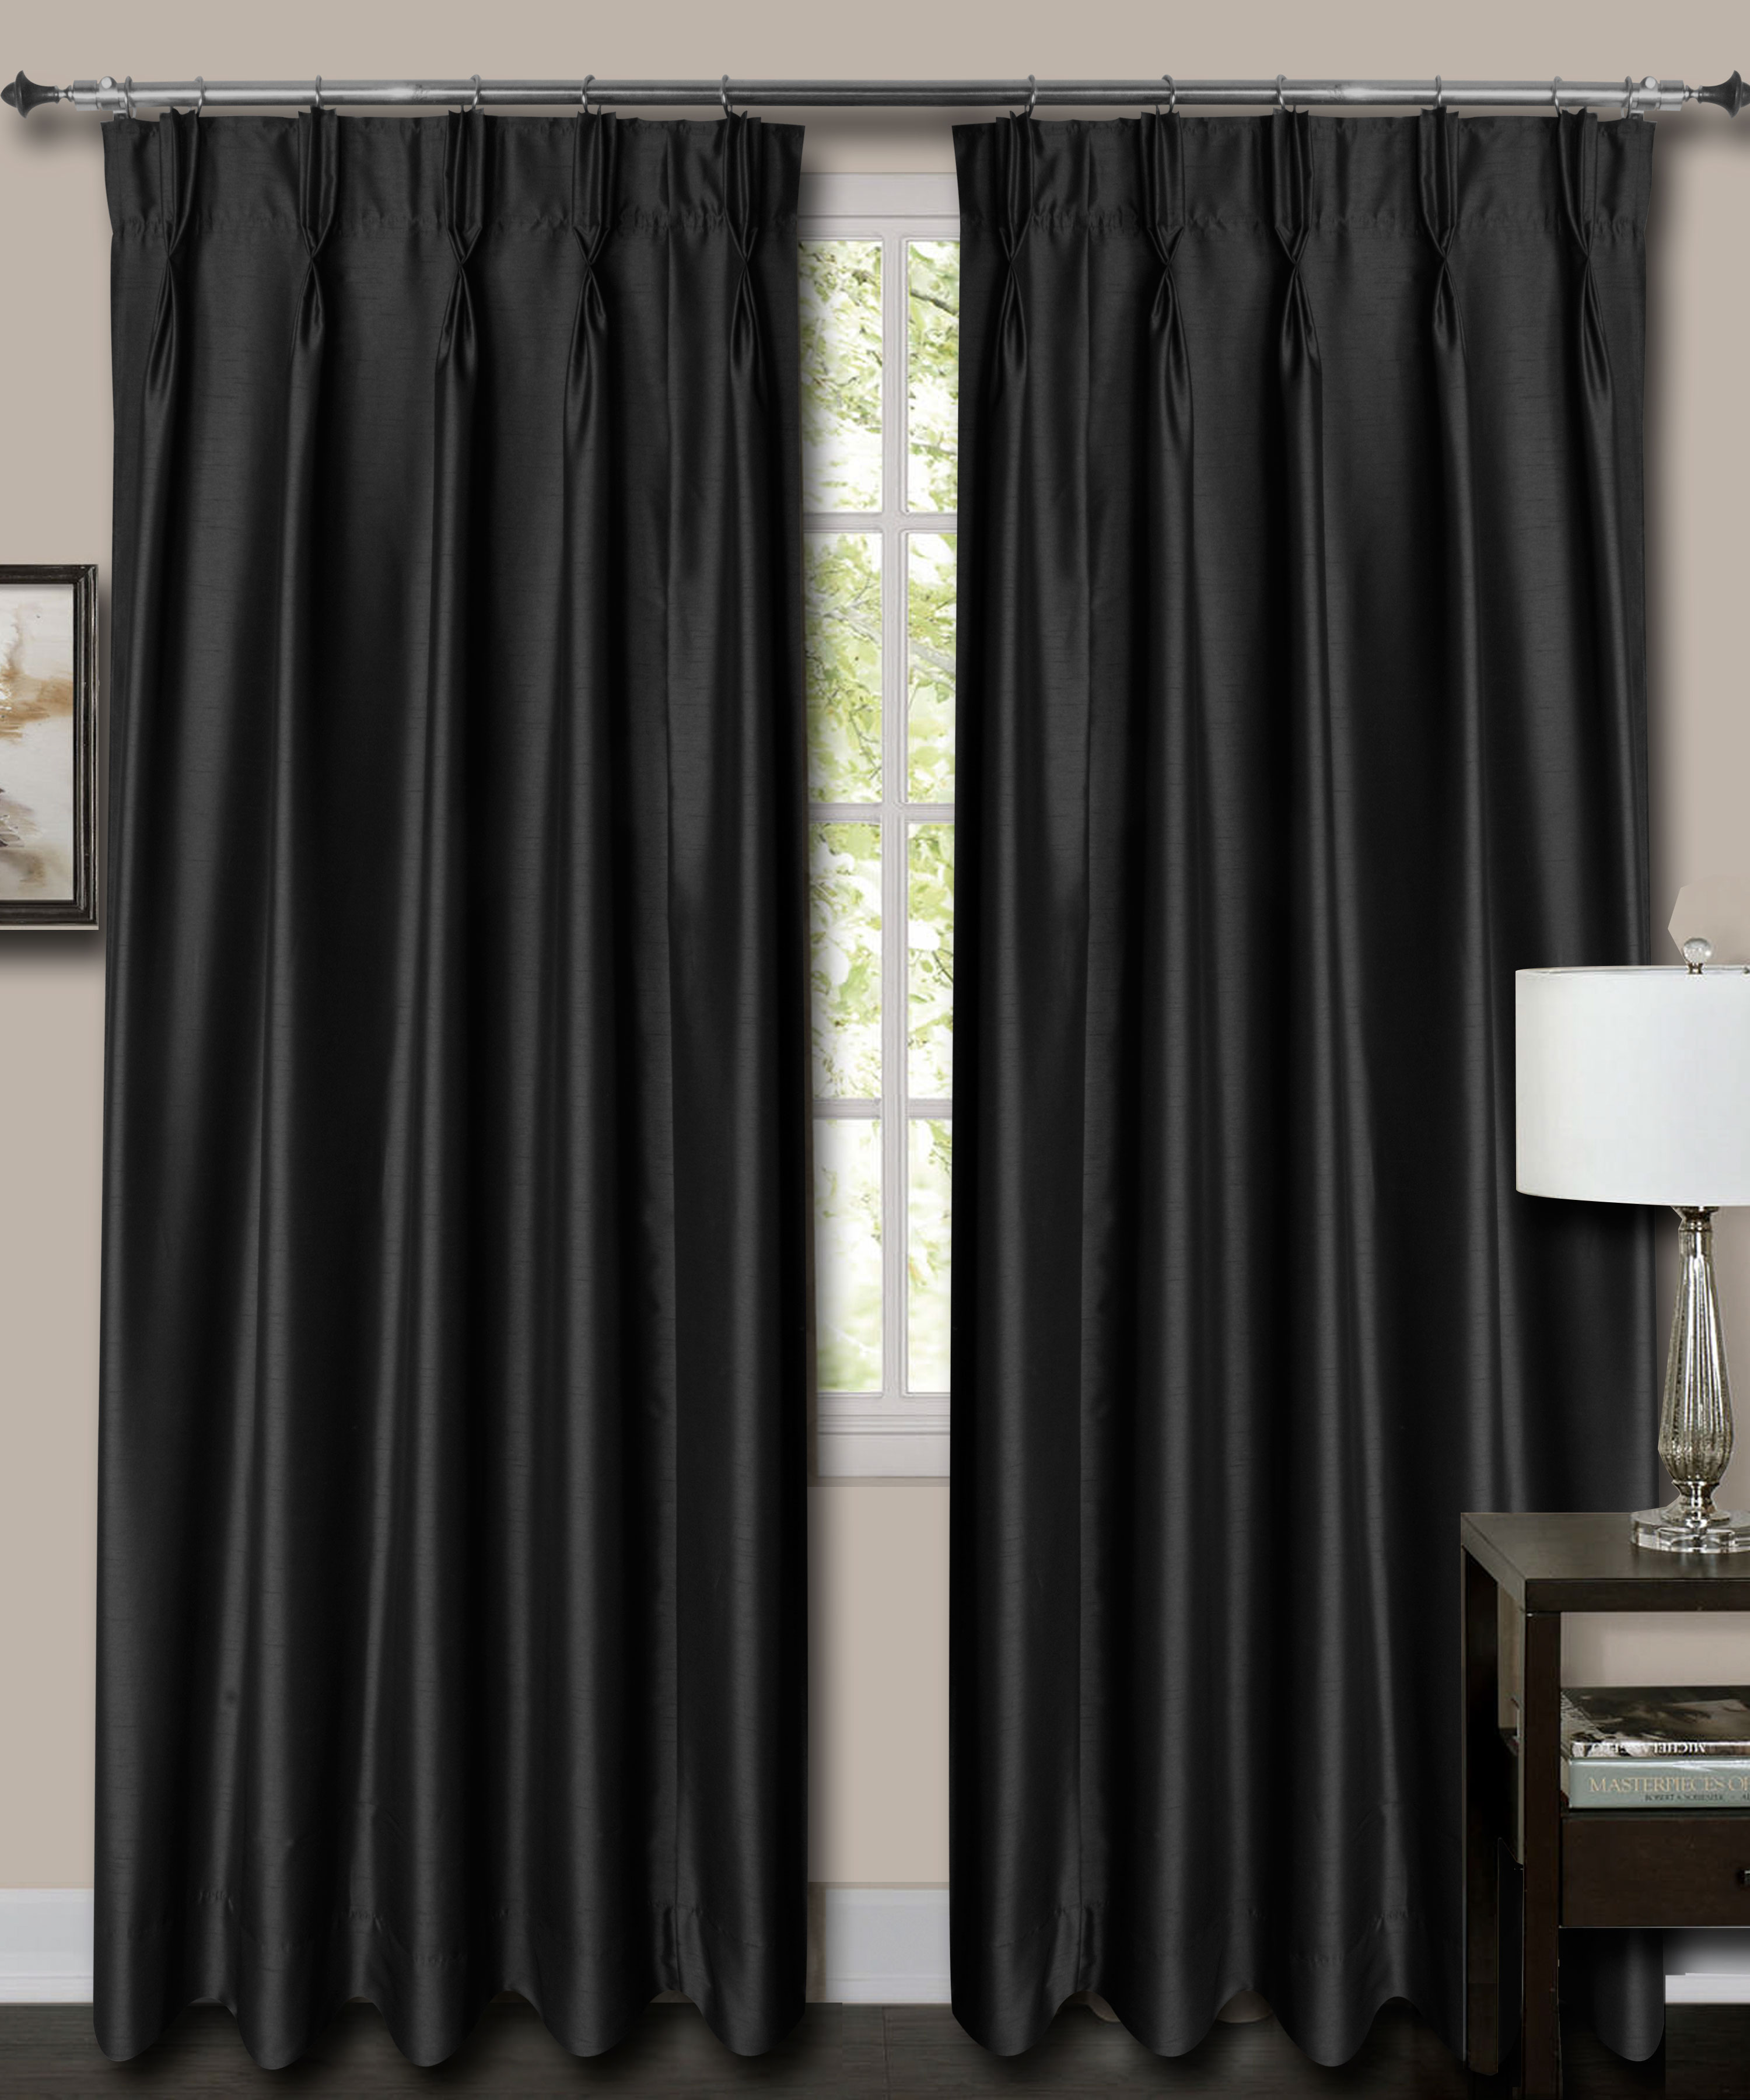 "French Pleat Top Black Faux Silk Dupioni Curtains. (65"" Wide, 9 Feet Long, Without Lining)"